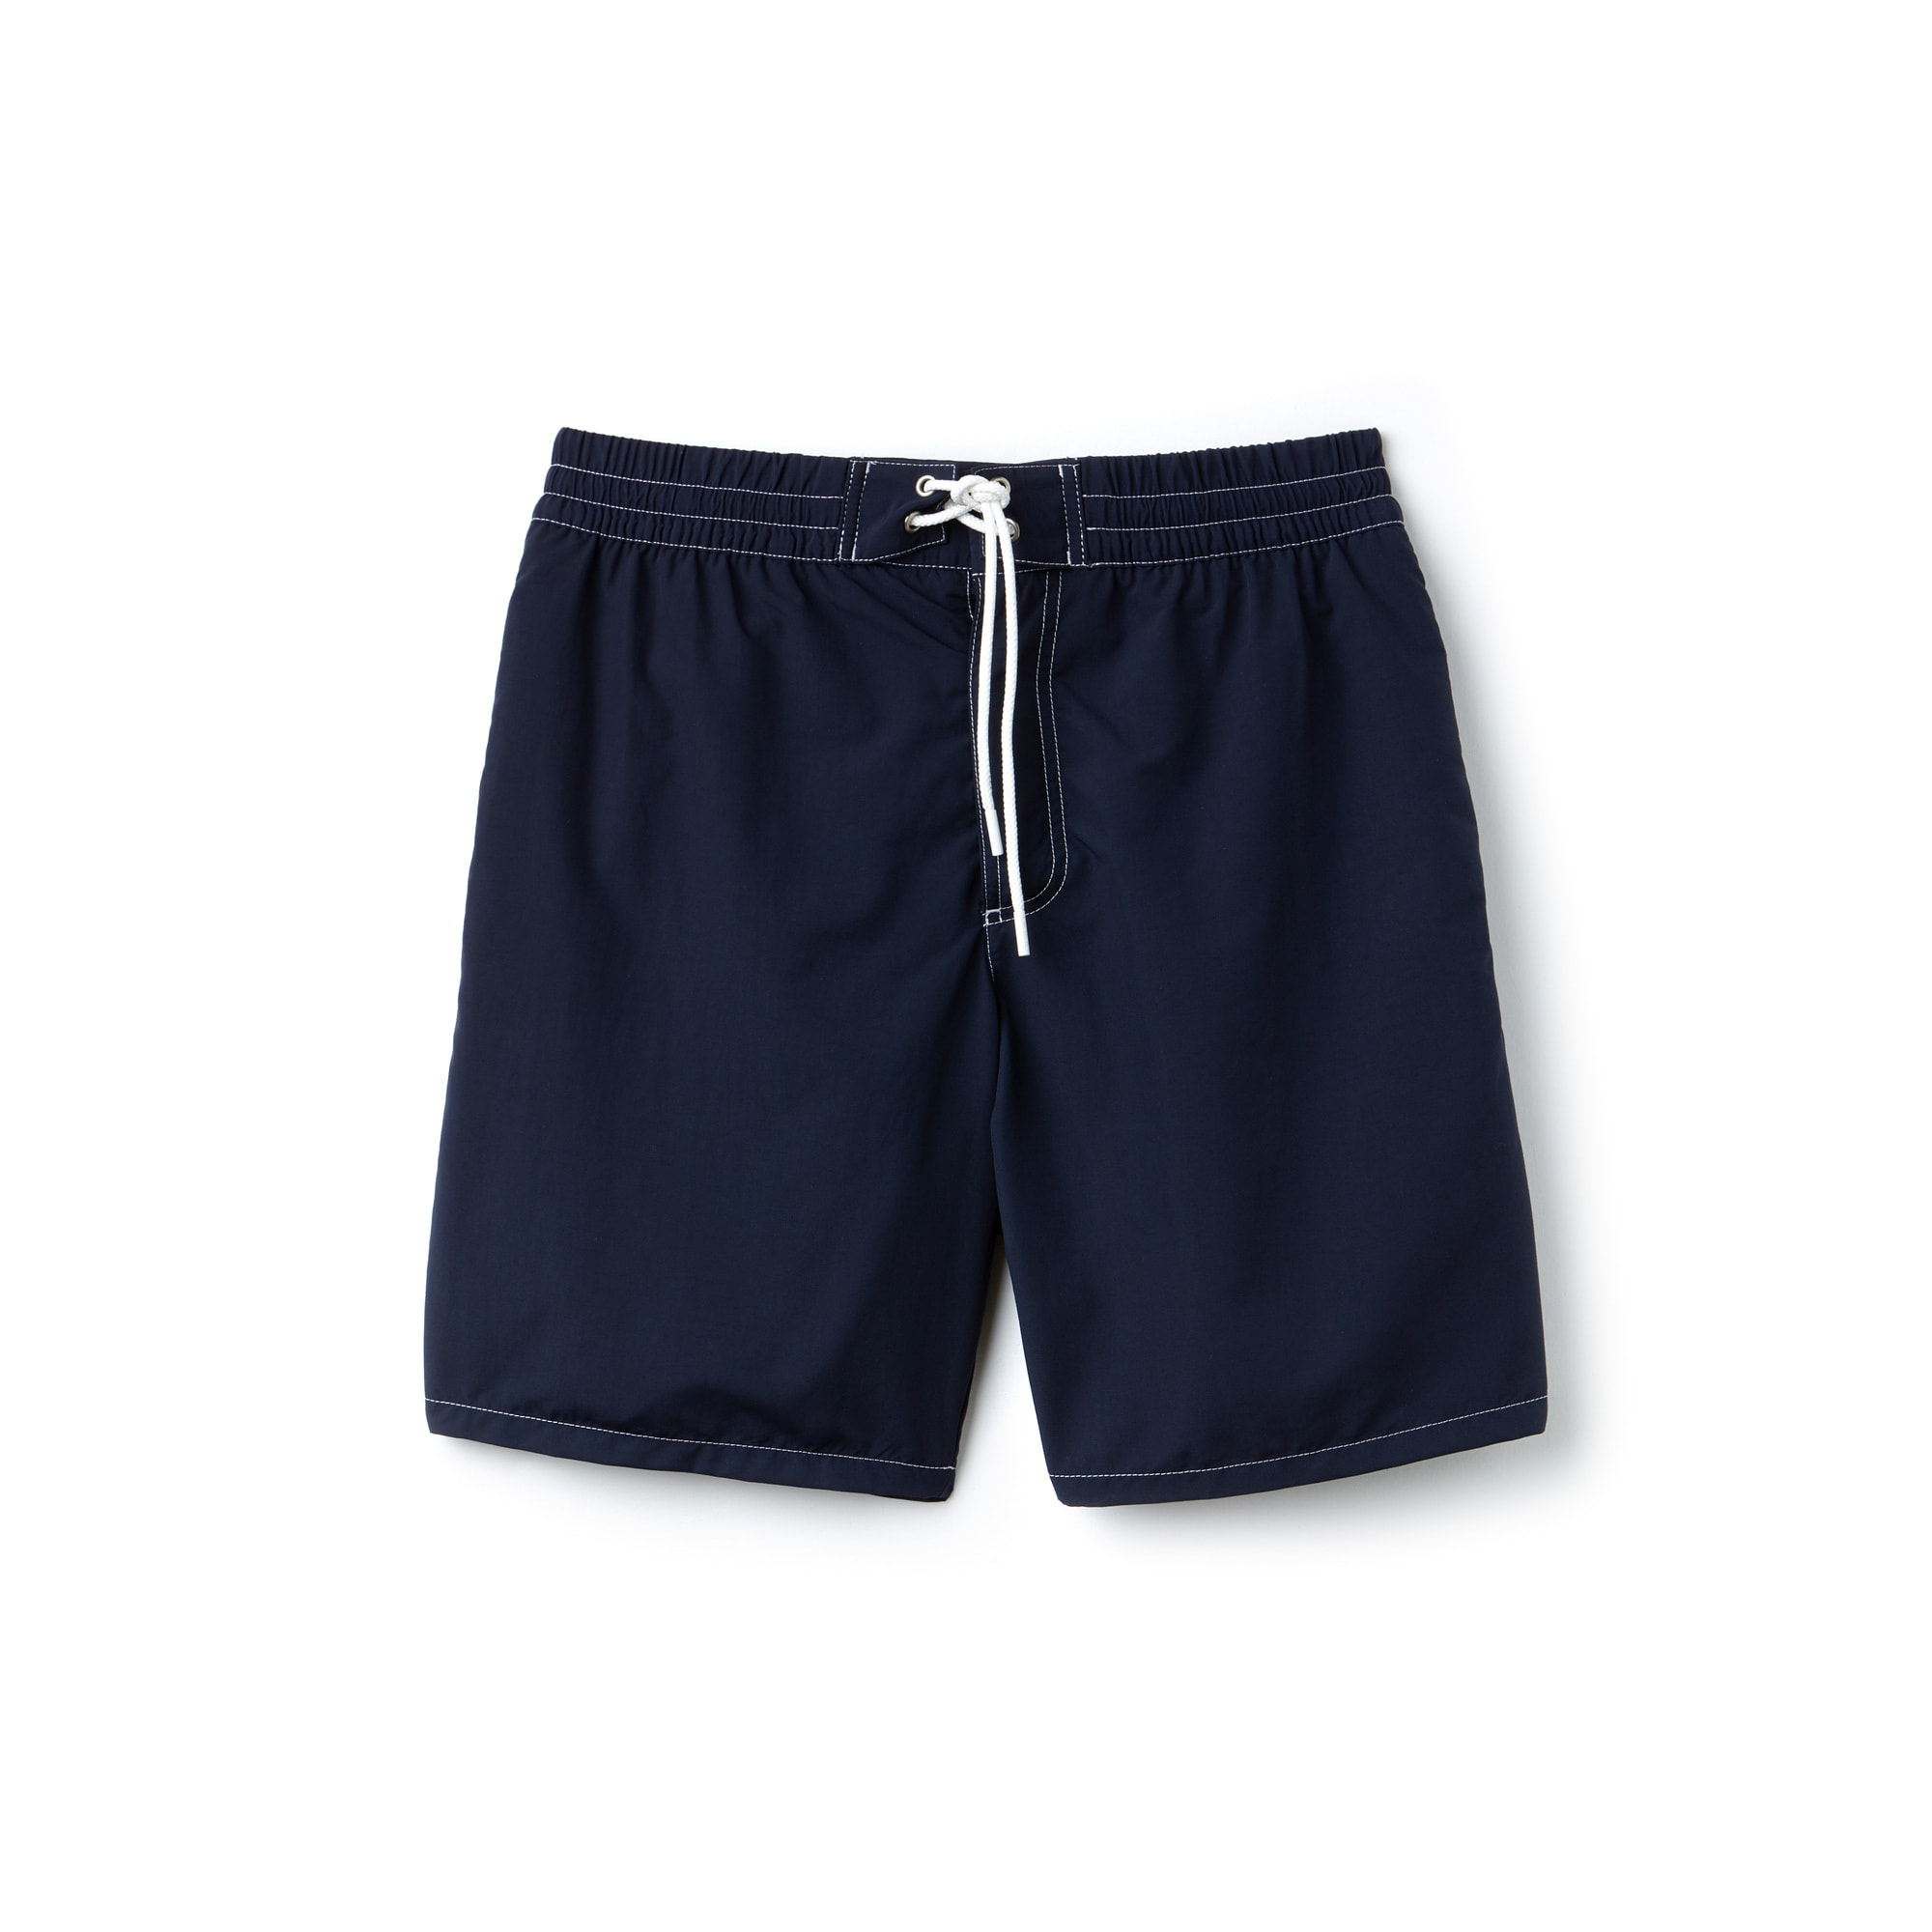 Men's Crocodile Embroidery Canvas Serge Swimming Trunks